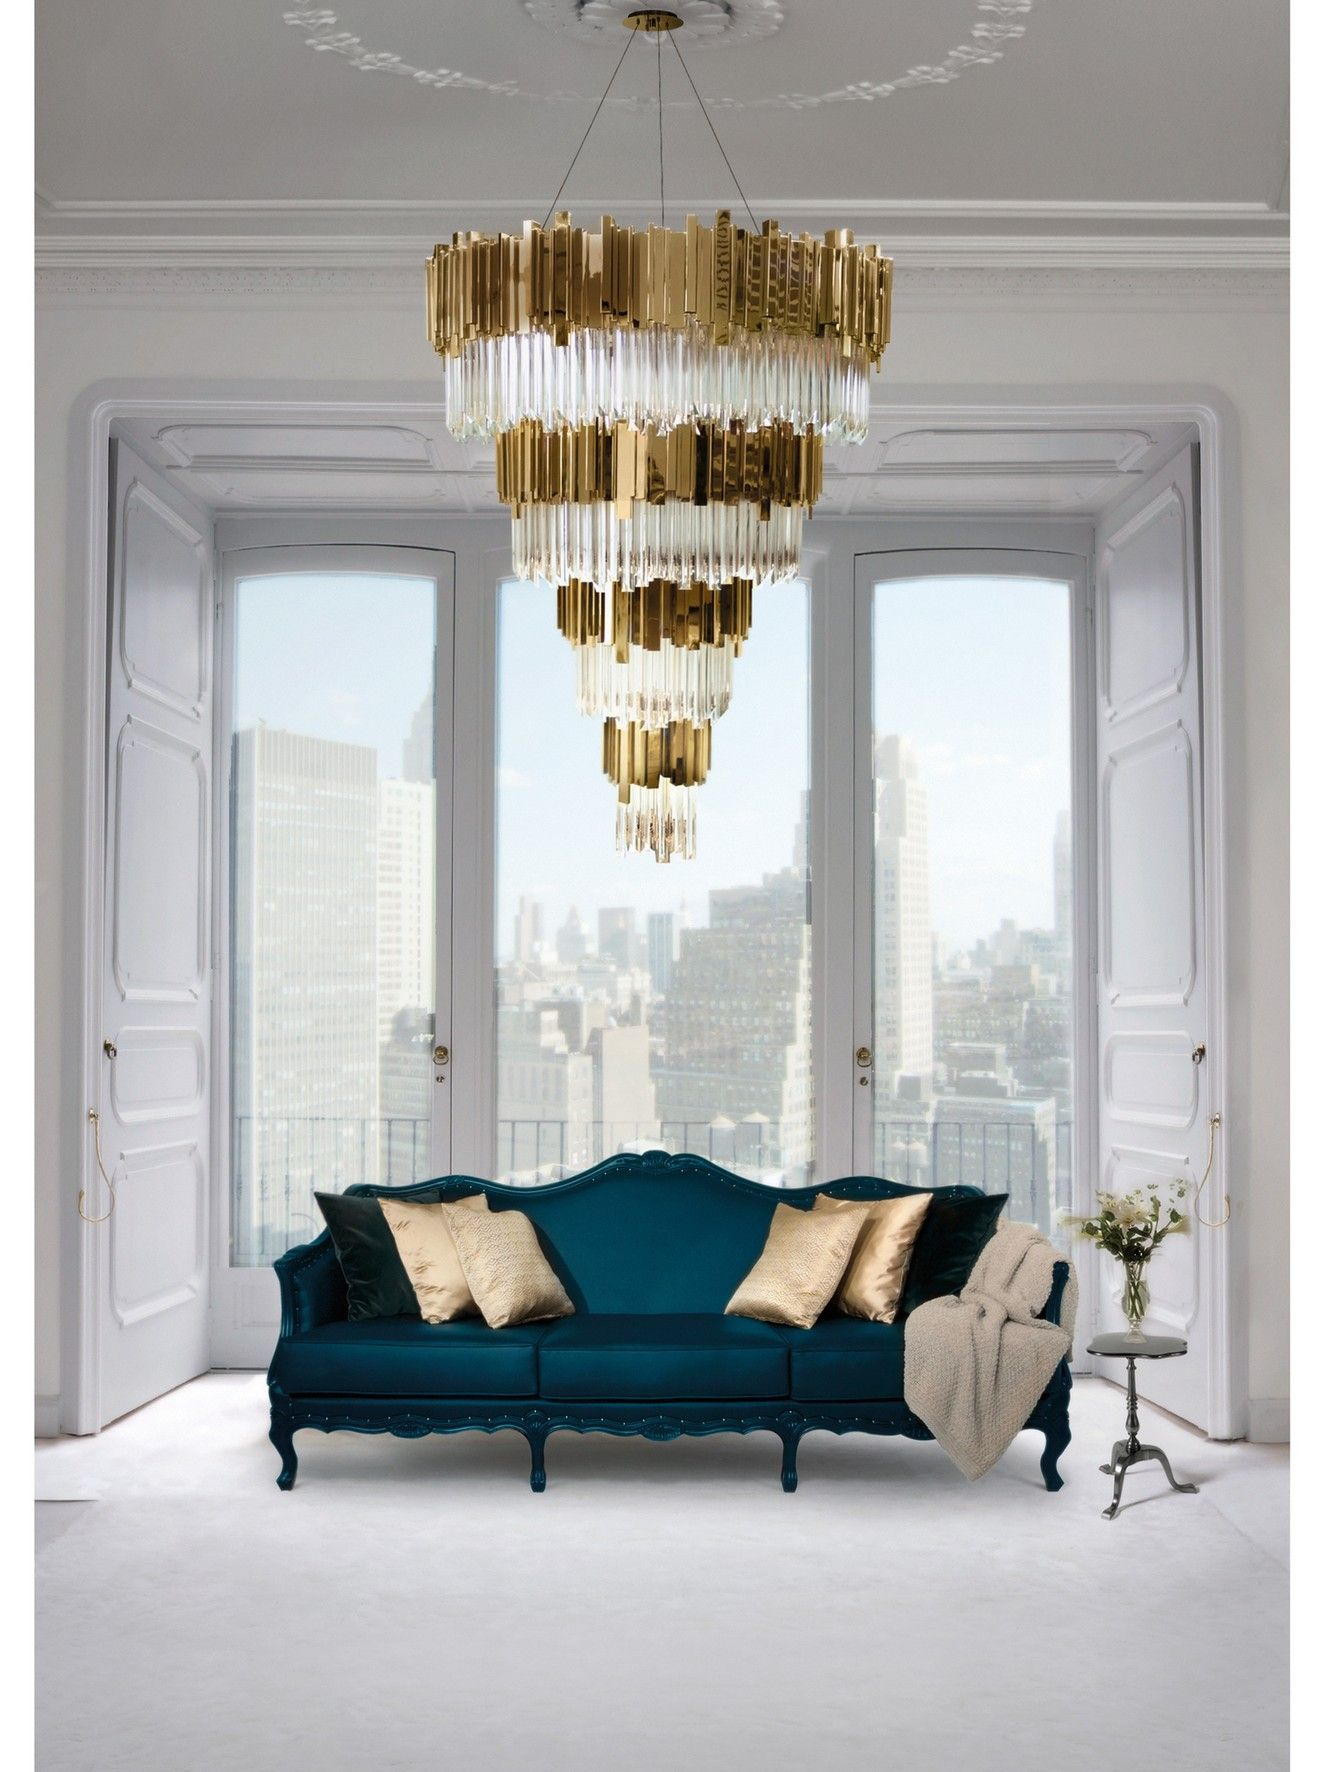 Renowned Interior Design Fair 2017 Is Back With Maison Objet Paris In January Luxury One Of The Trends Mo Will Present And Empire Chandelier By